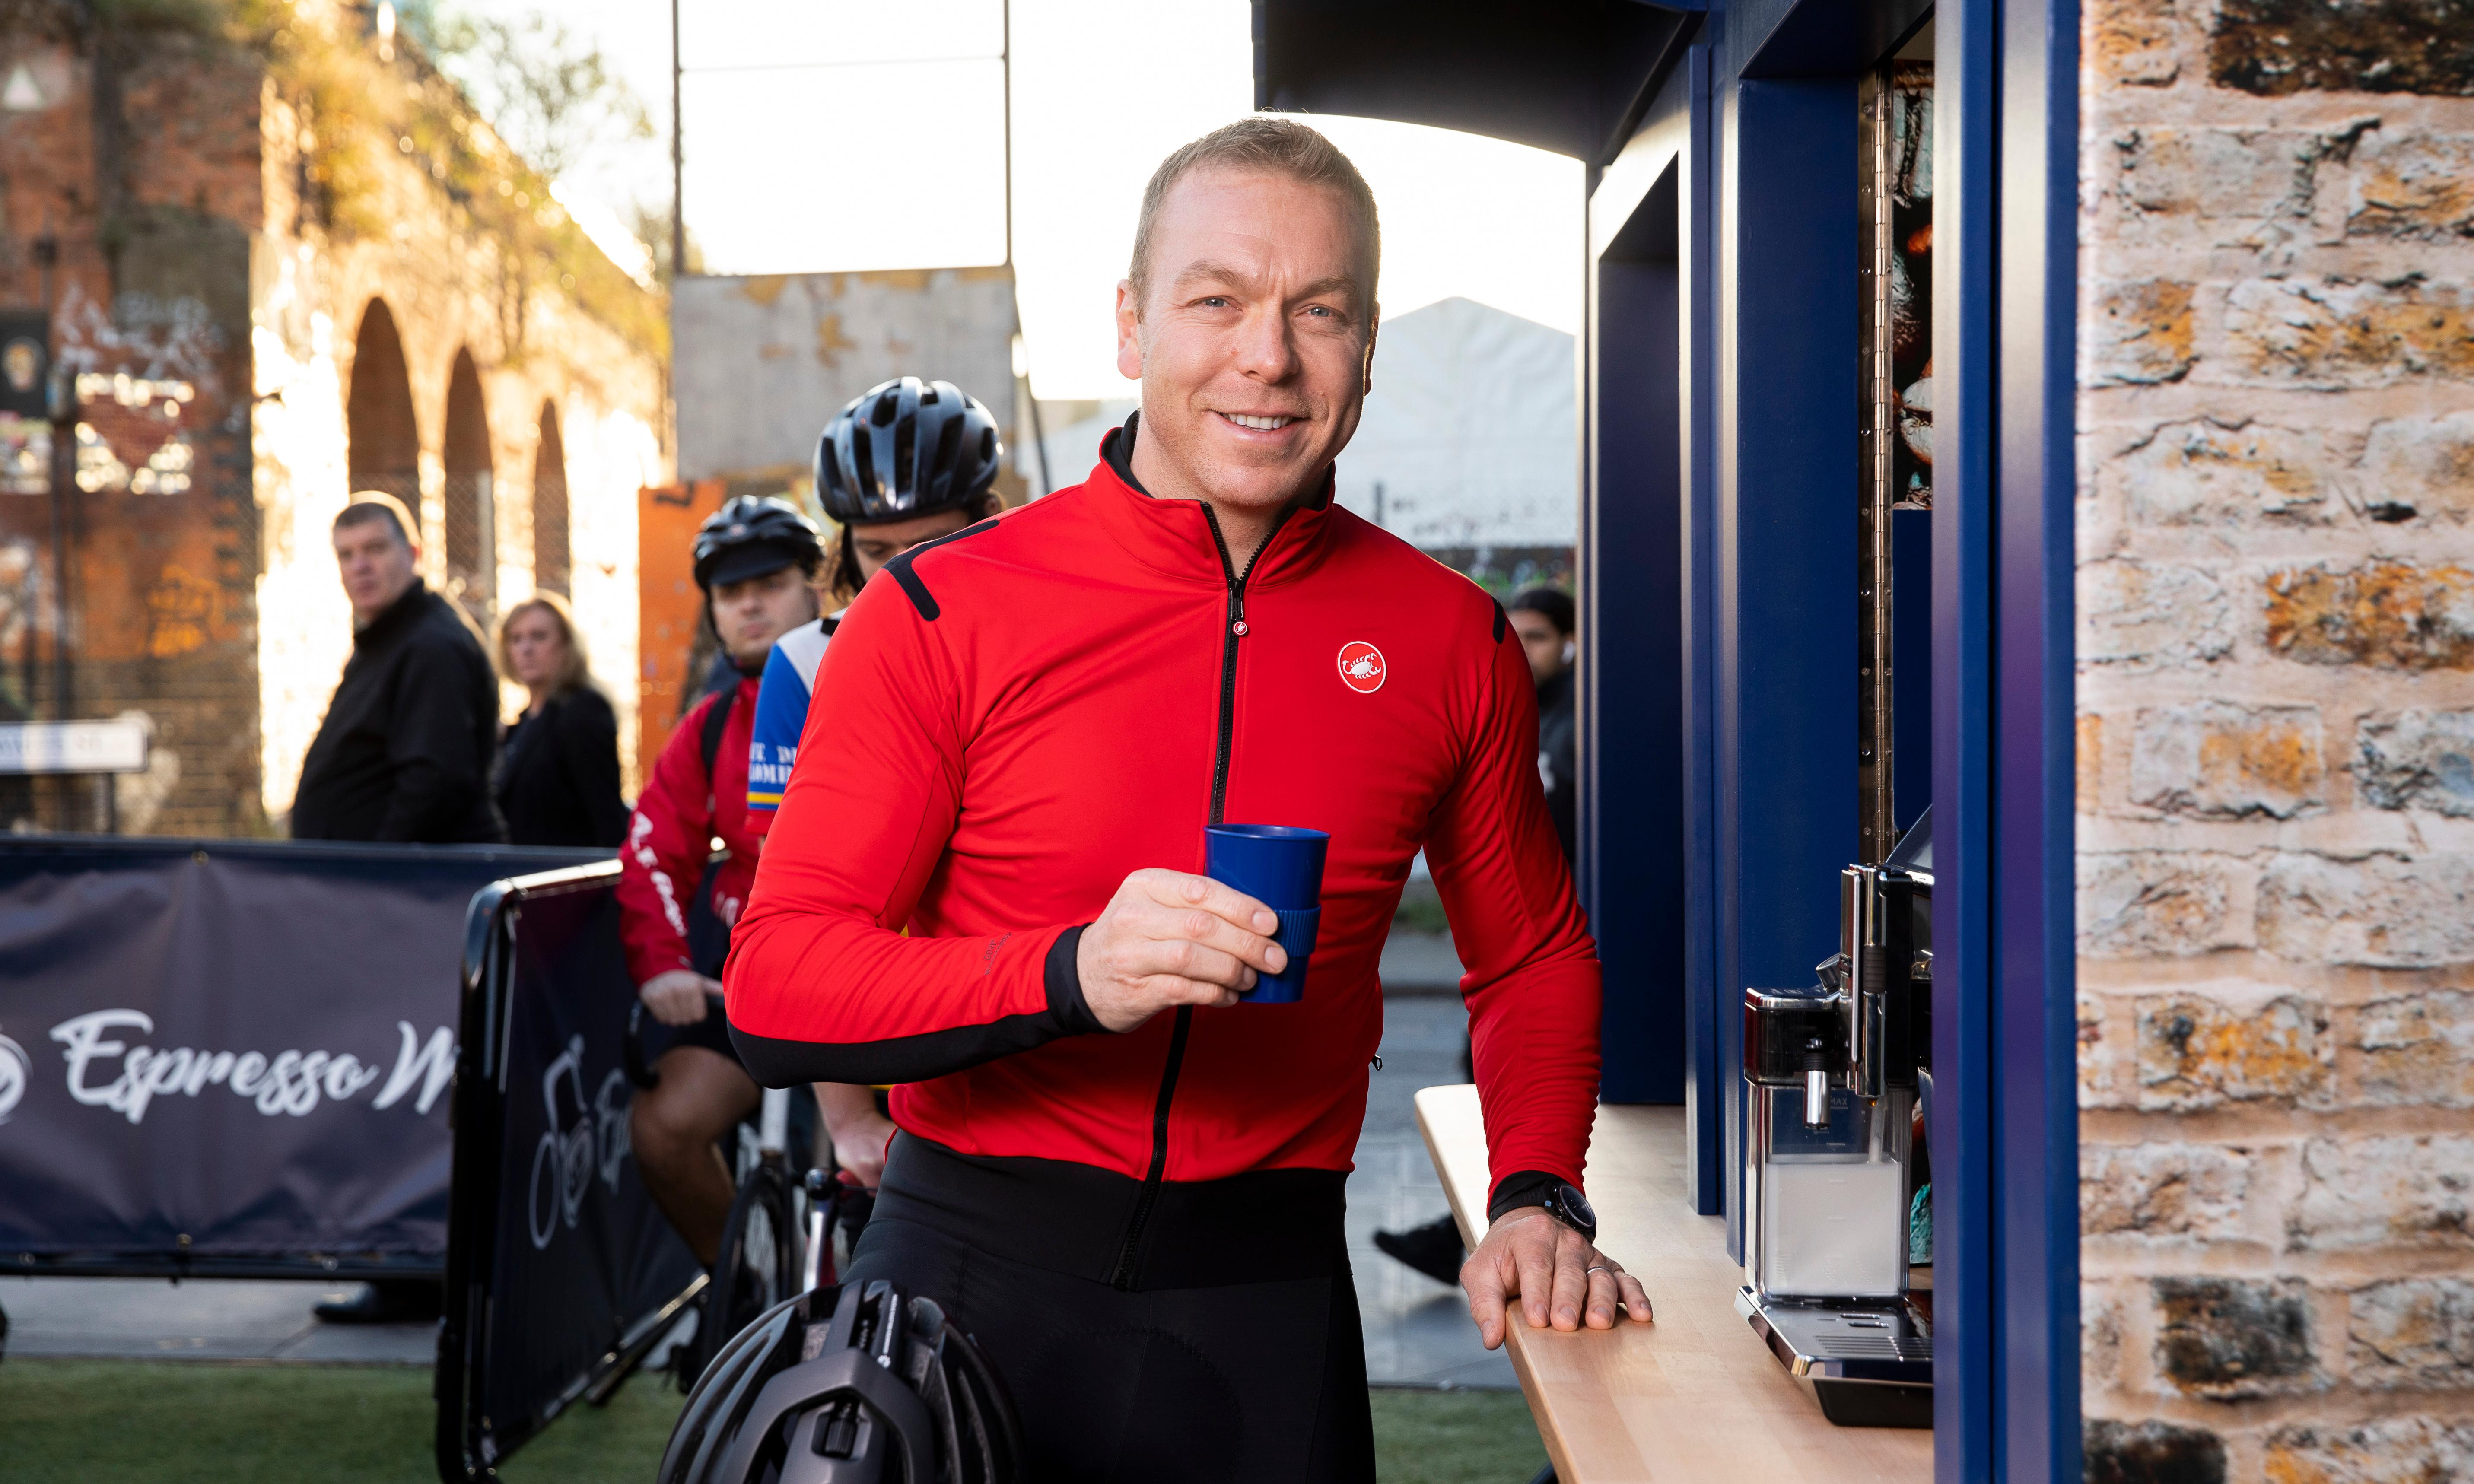 Chris Hoy calls for end to cyclist and motorist 'them and us' mentality